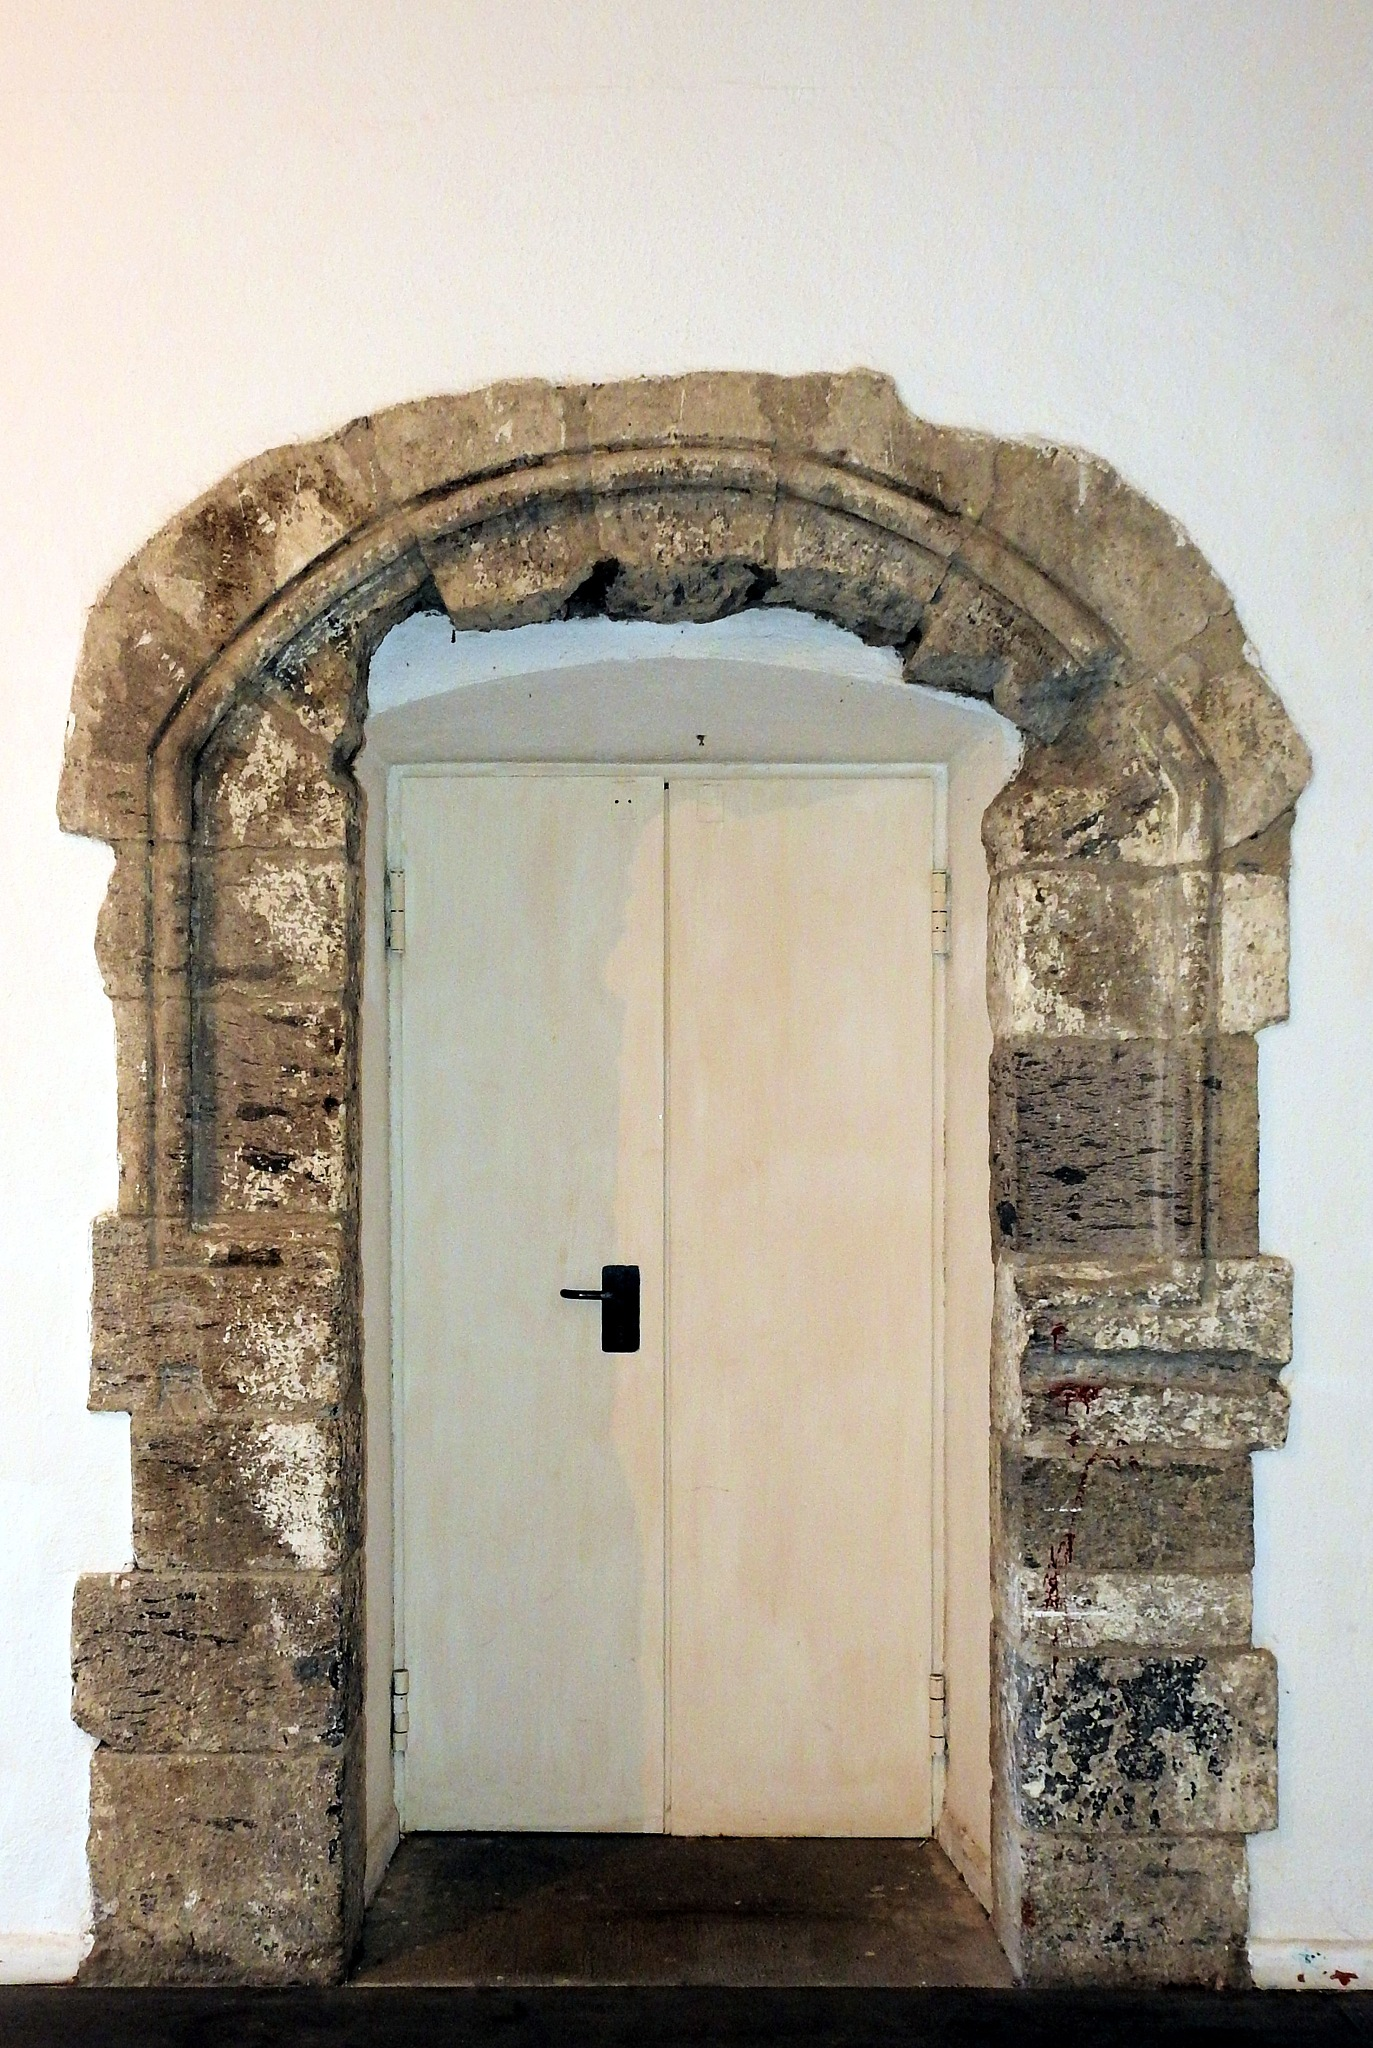 Naples - Castel dell'Ovo - The Door by Delirium Tremends 62